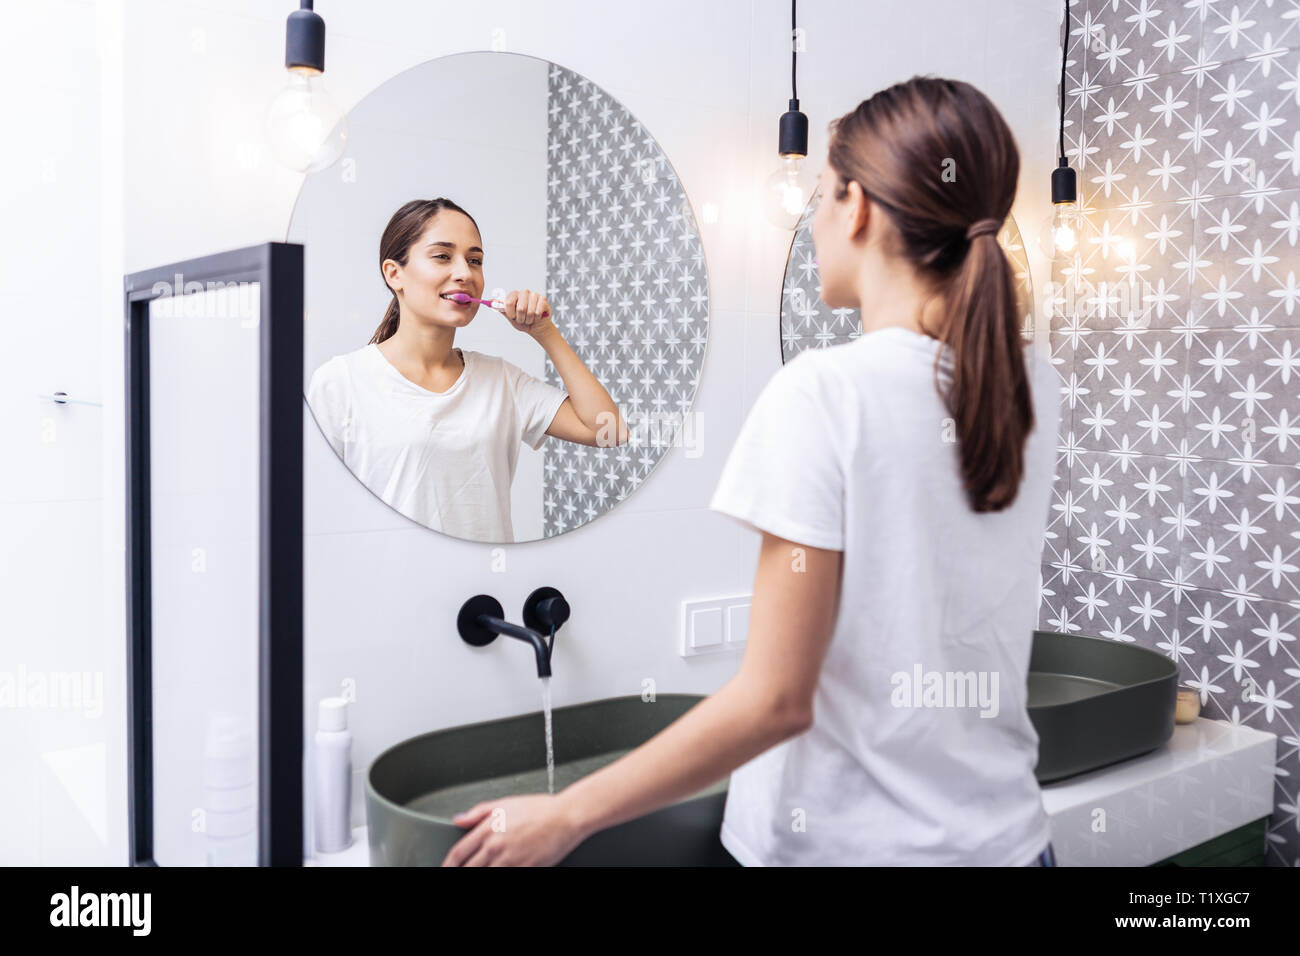 Appealing woman brushing teeth standing in the bathroom - Stock Image